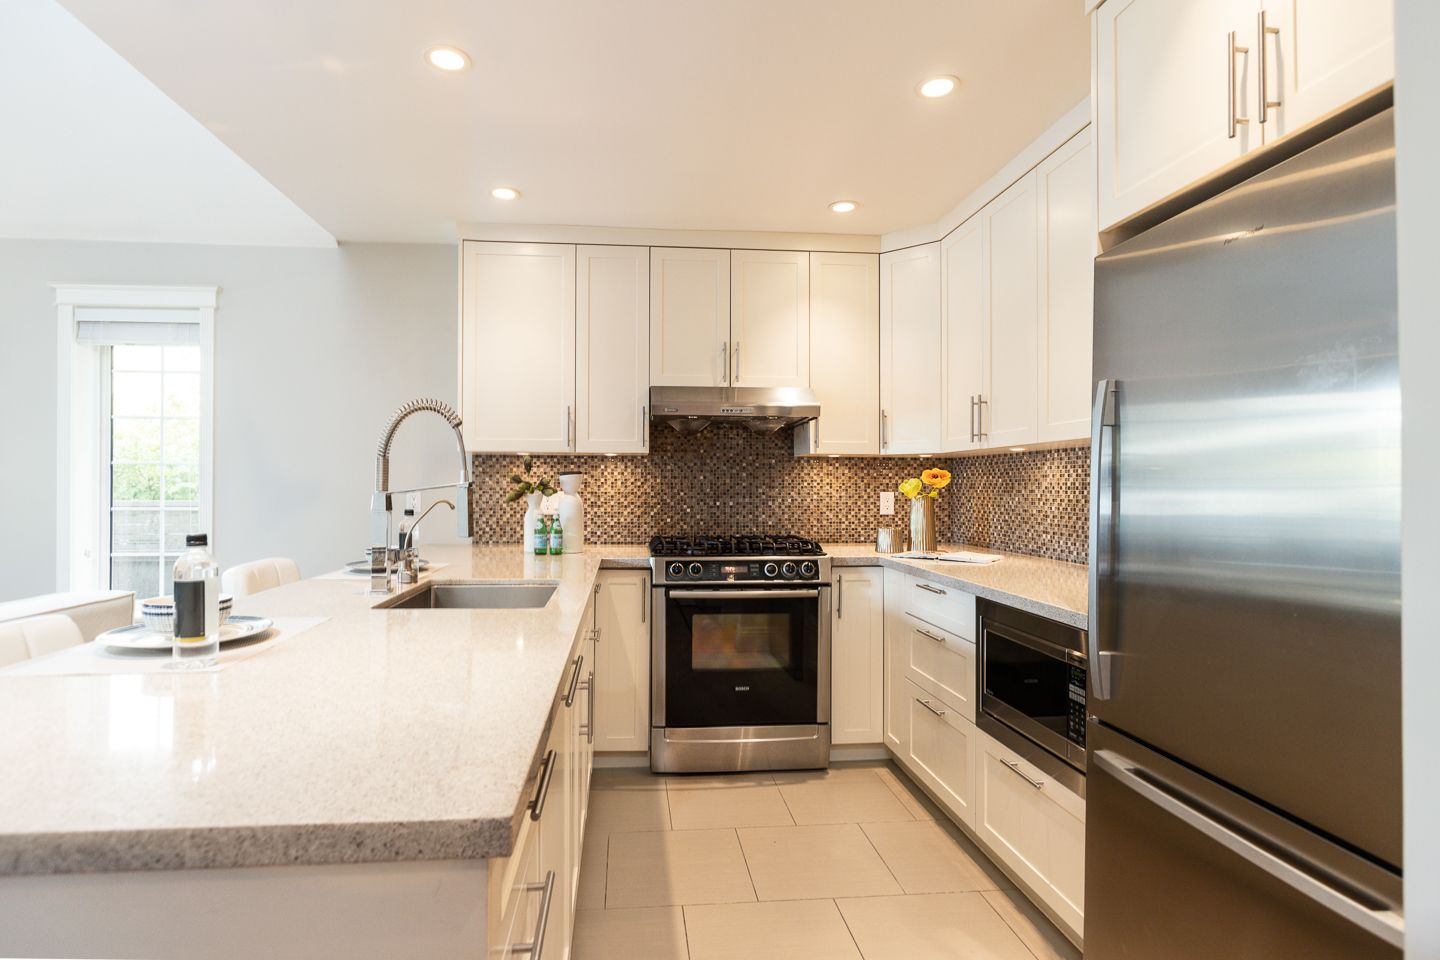 Photo 7: Photos: 2267 WEST 13TH AV in VANCOUVER: Kitsilano 1/2 Duplex for sale (Vancouver West)  : MLS®# R2407976